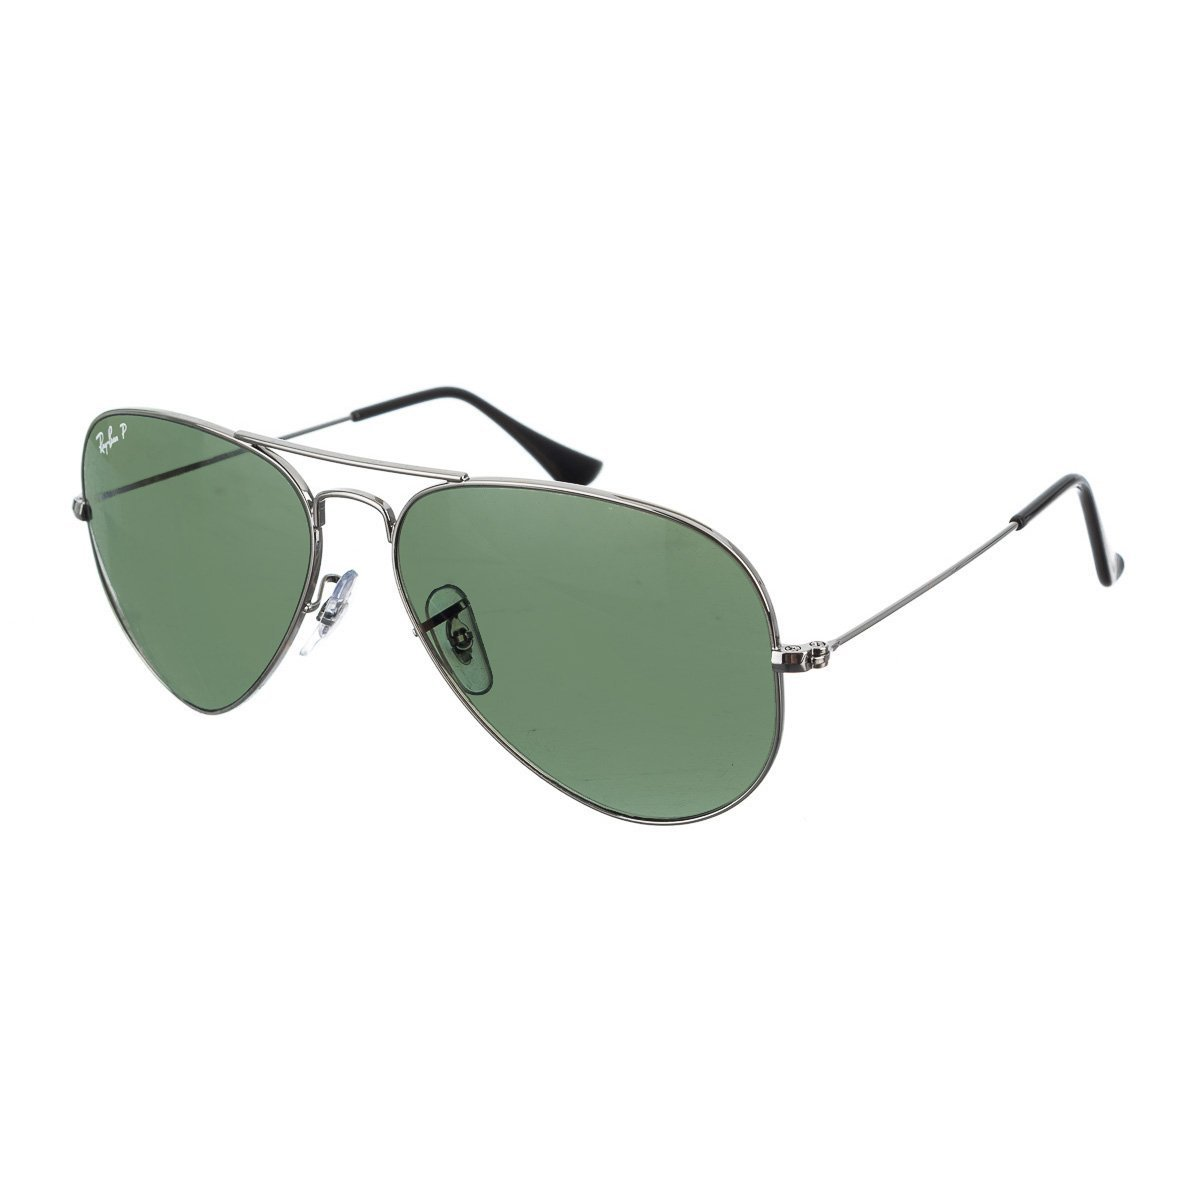 RAY-BAN RB3025 Aviator Large Metal Polarized Sunglasses, Gunmetal/Polarized Green, 58 mm by RAY-BAN